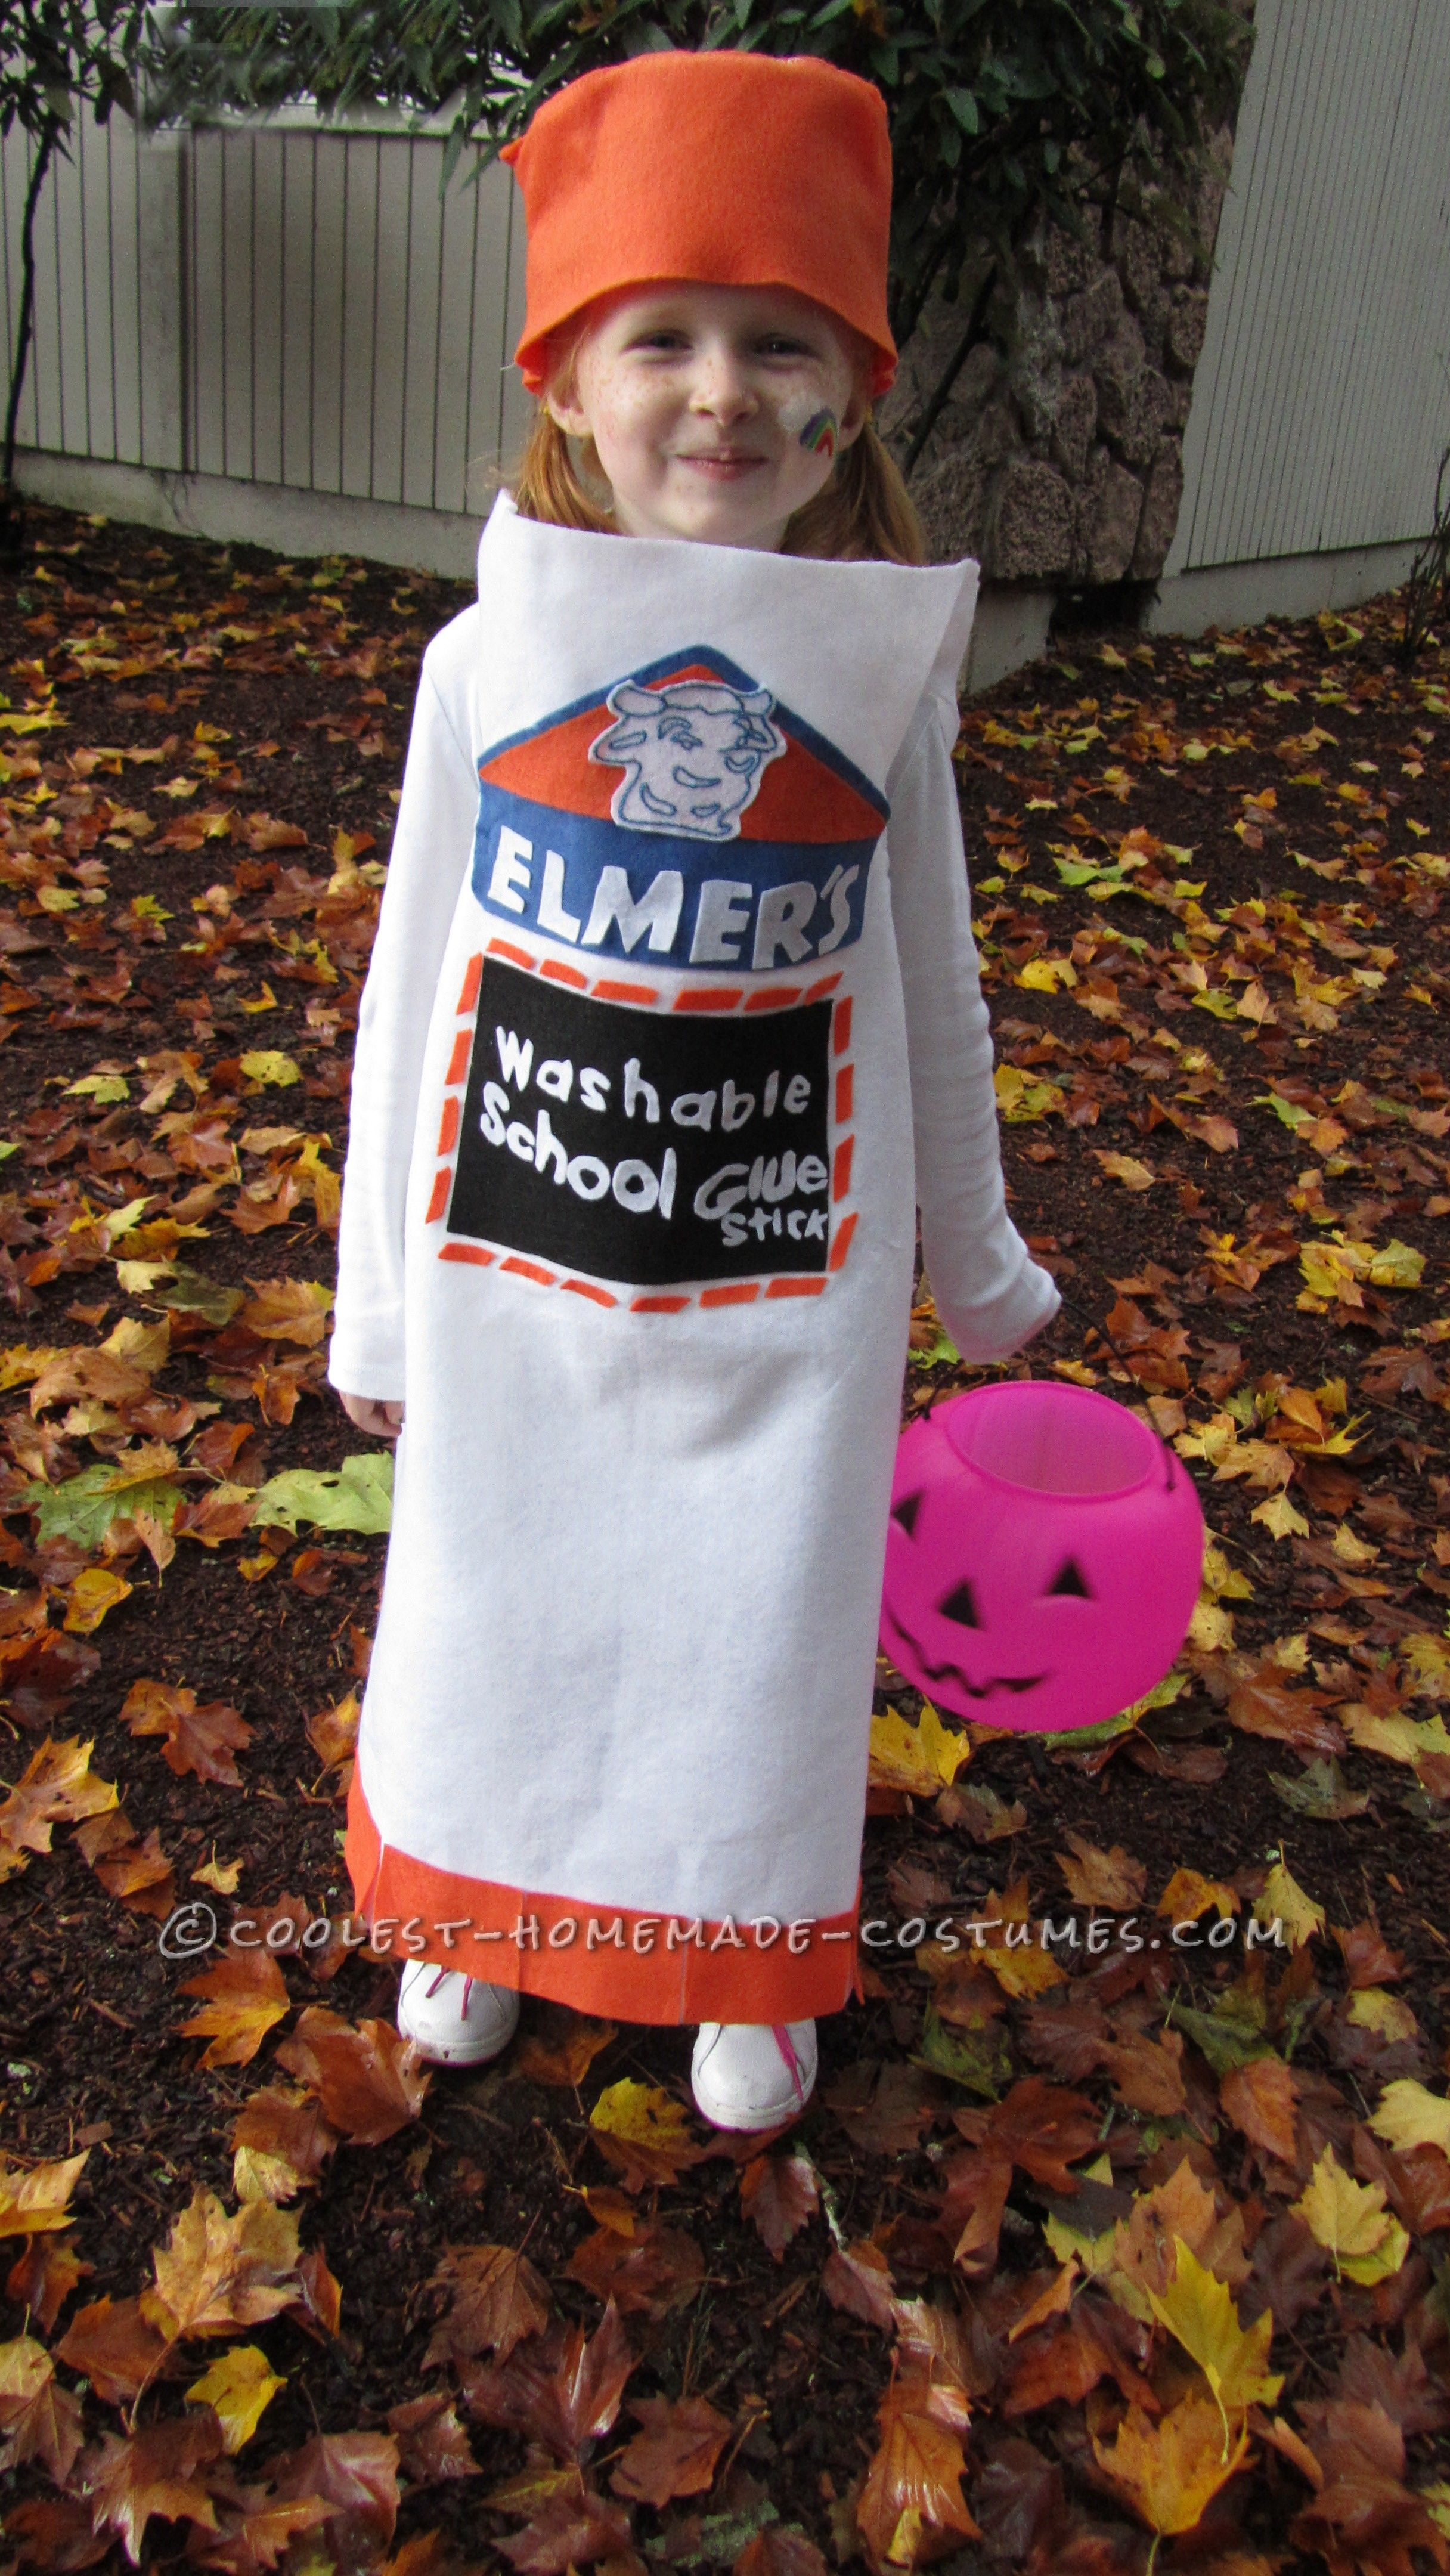 cool homemade elmer's glue stick costume for a girl | cool crafts